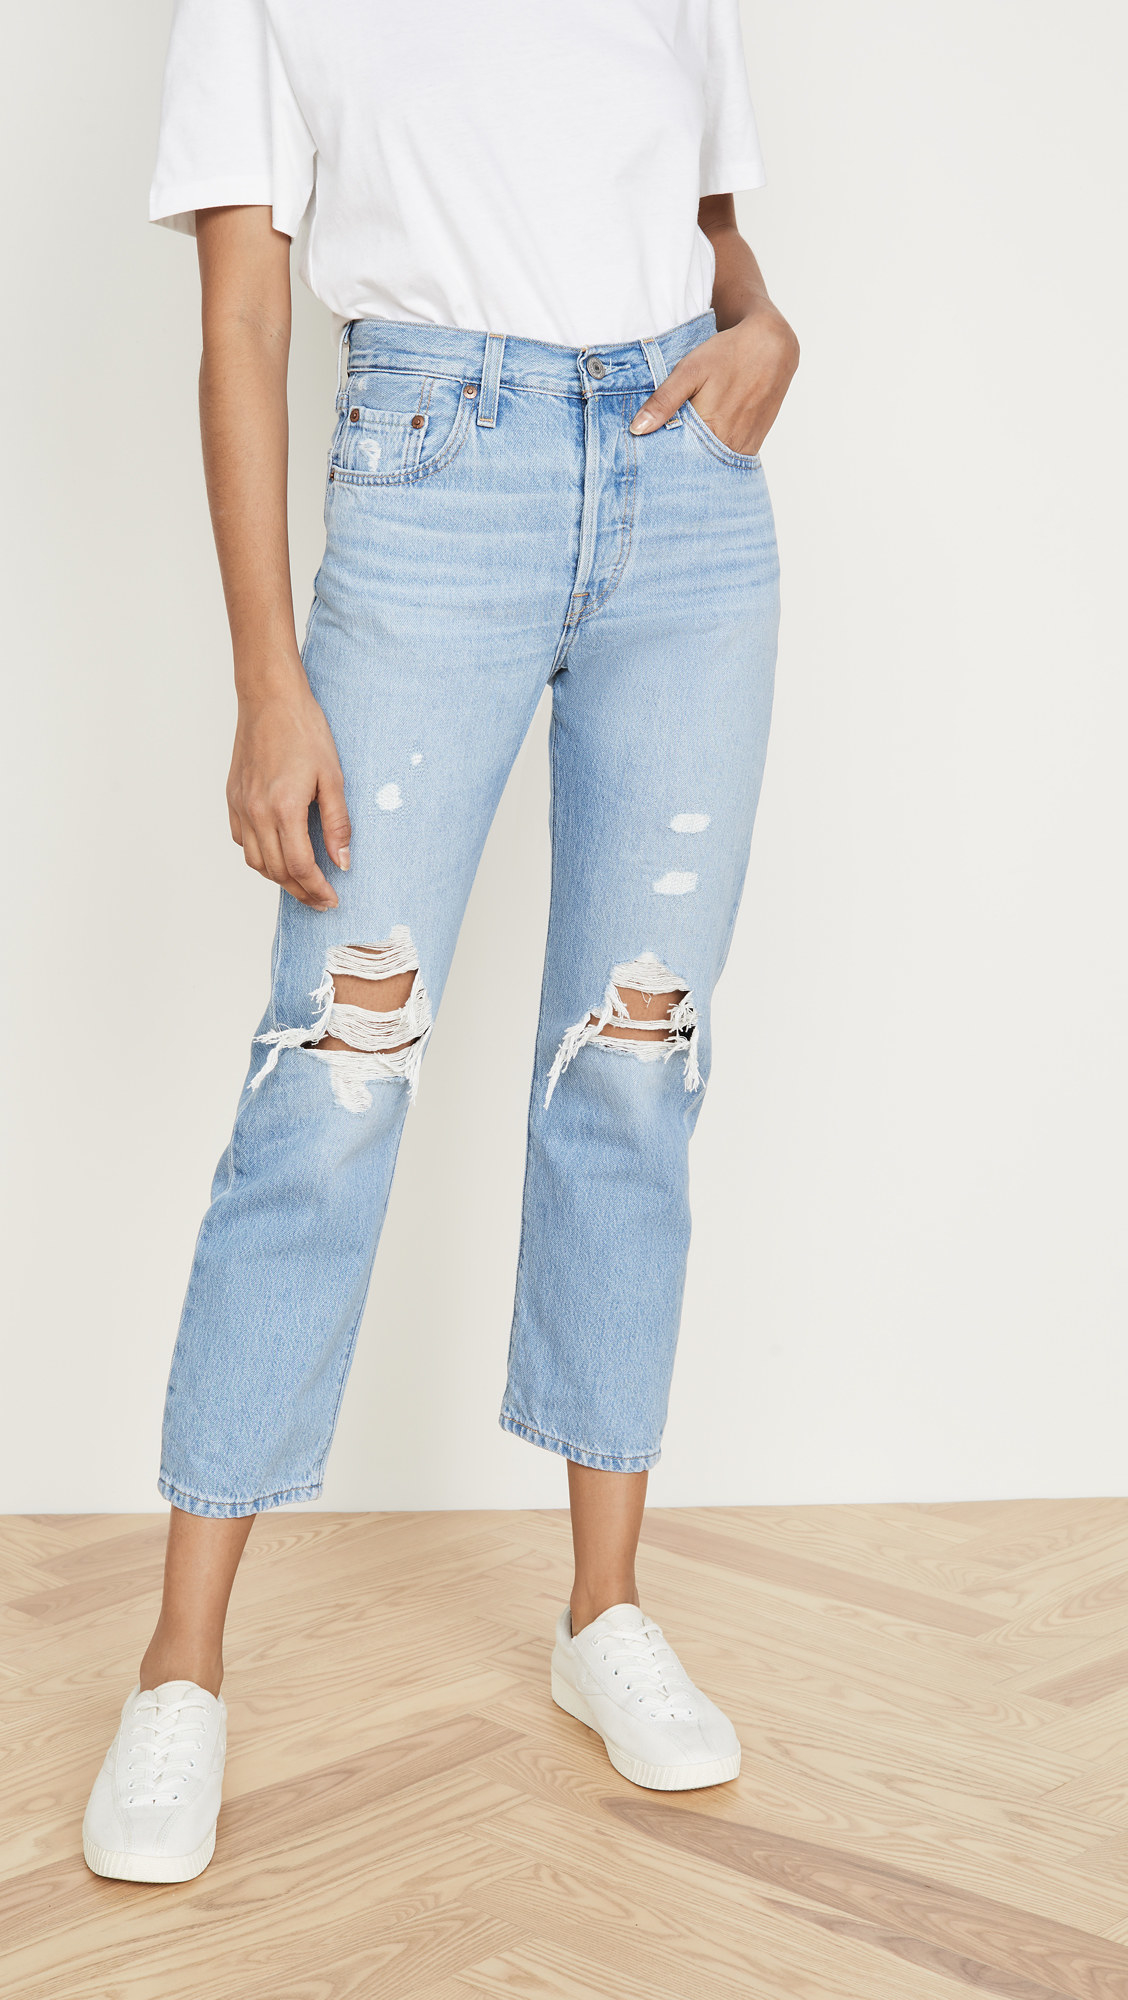 a model wearing light wash cropped denim jeans with distressed knees